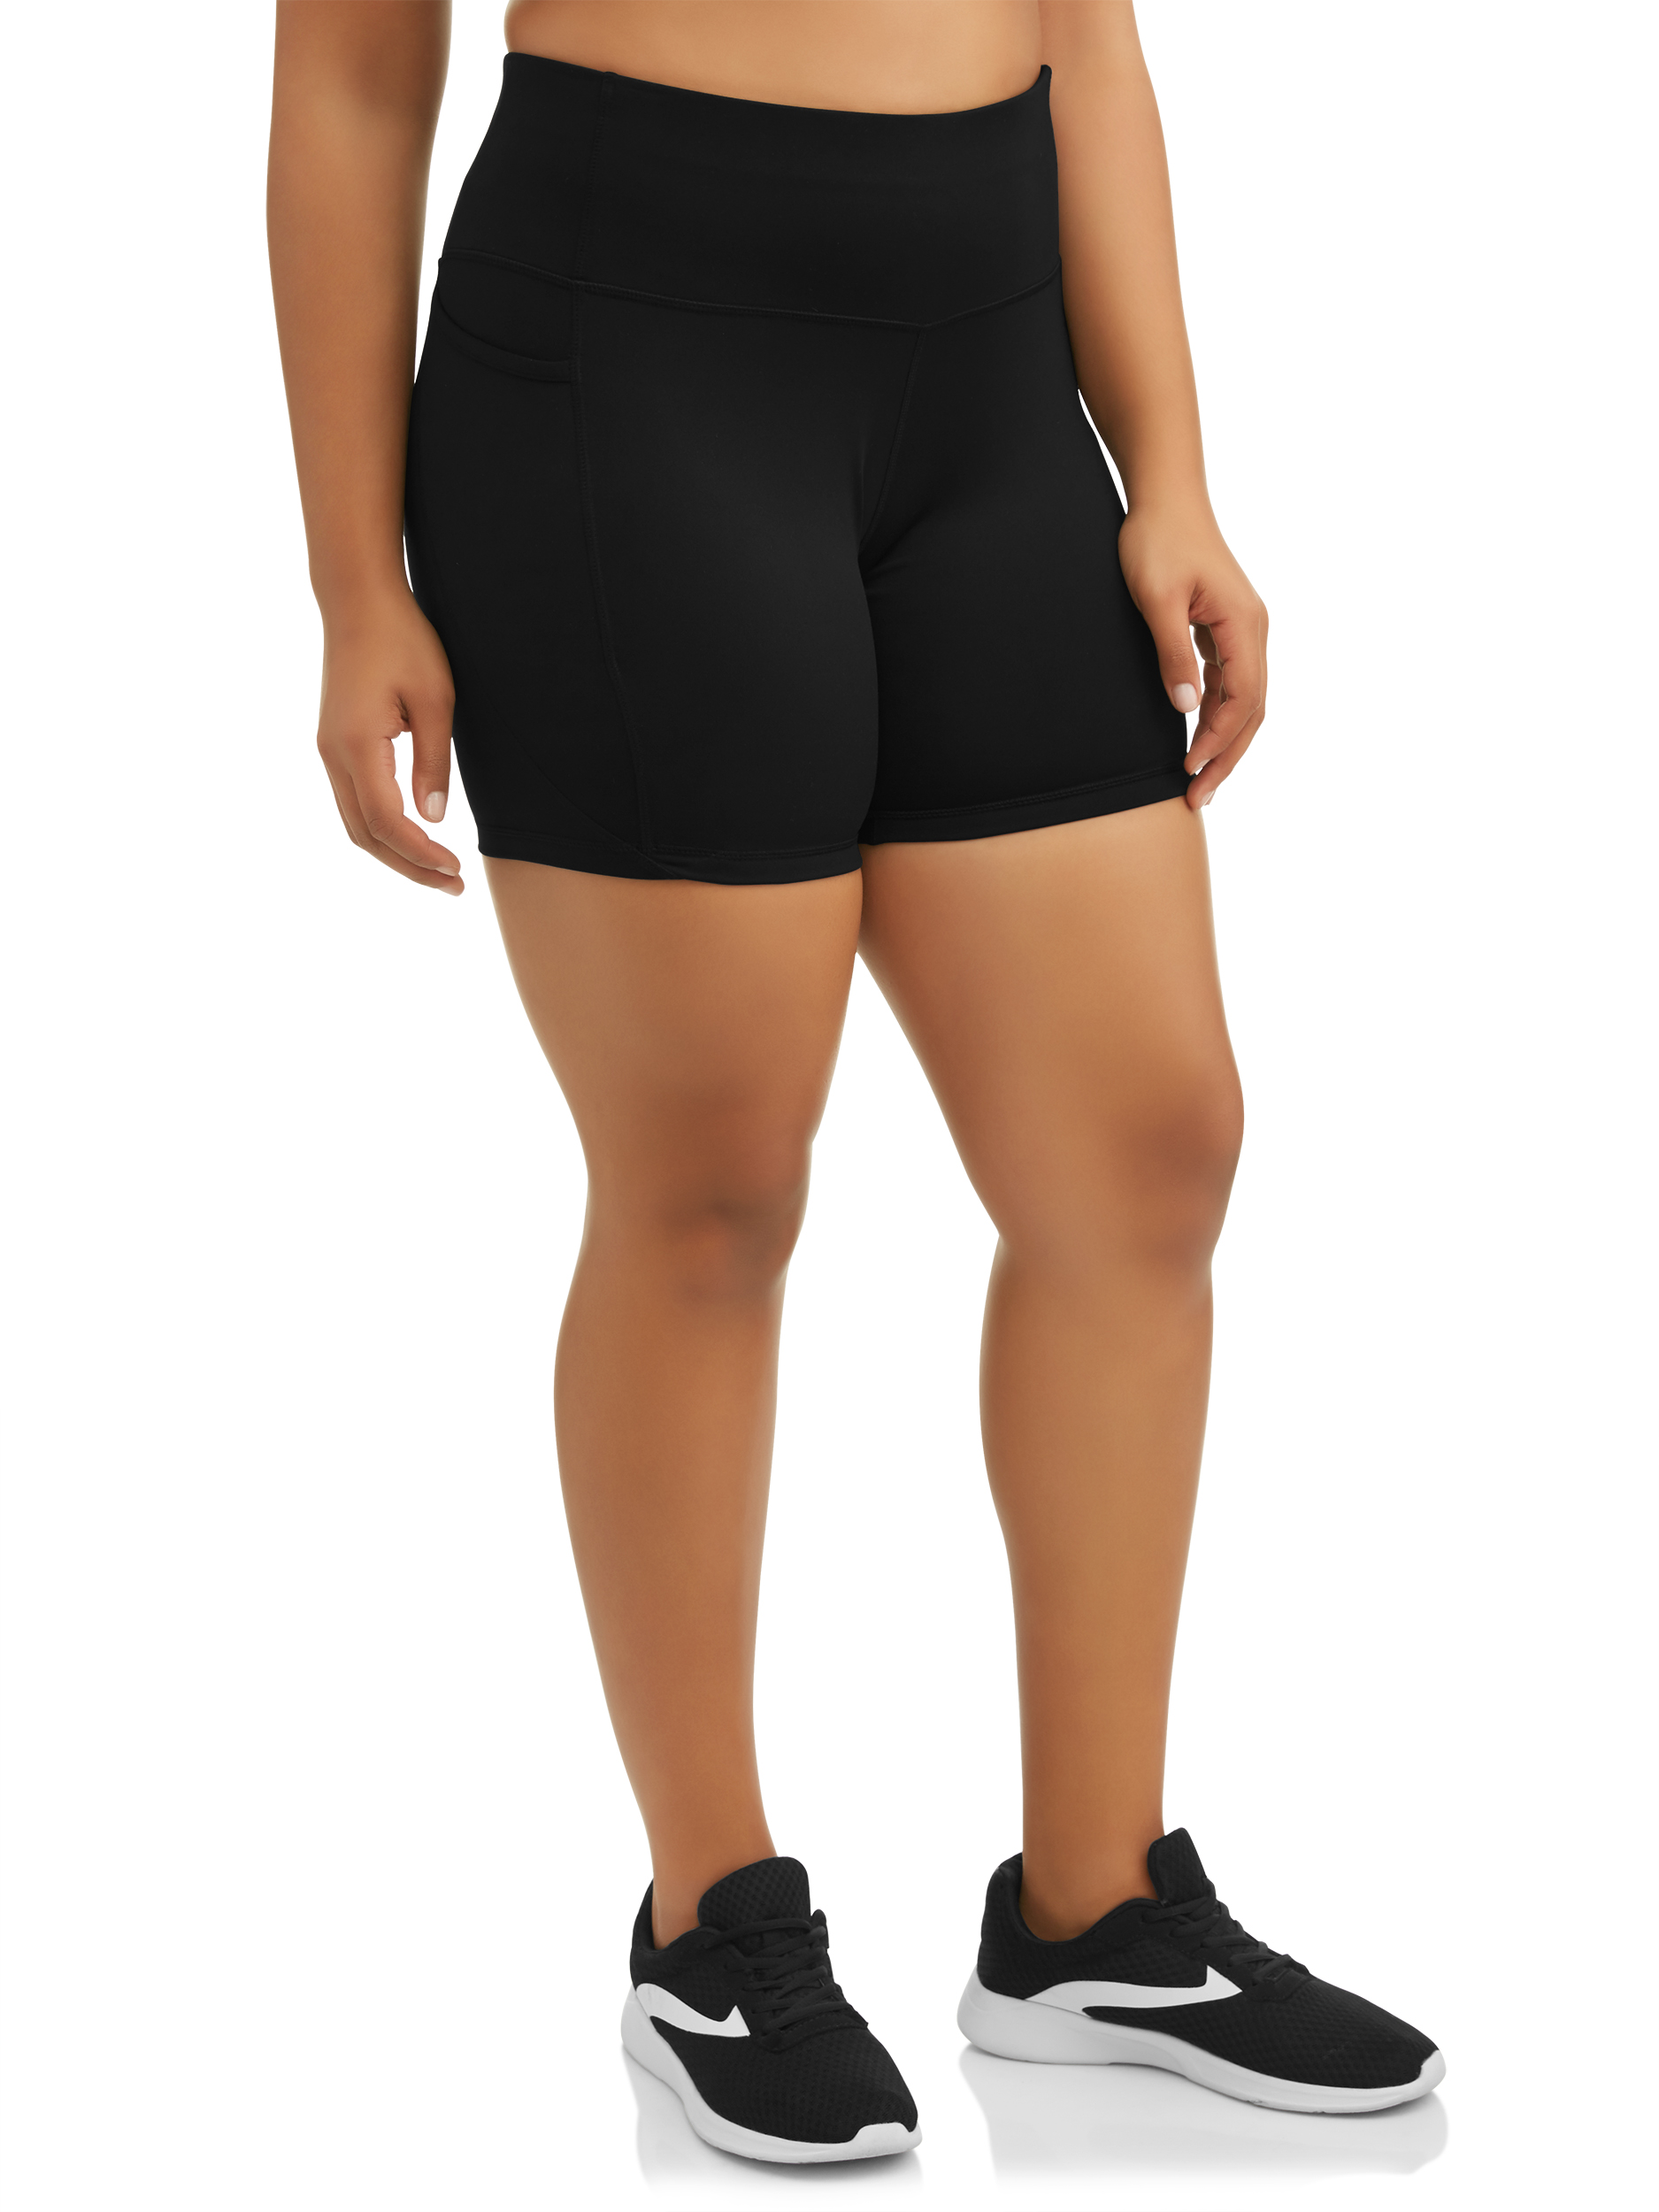 "Women's Plus Size Avia 7"" Bike Short"